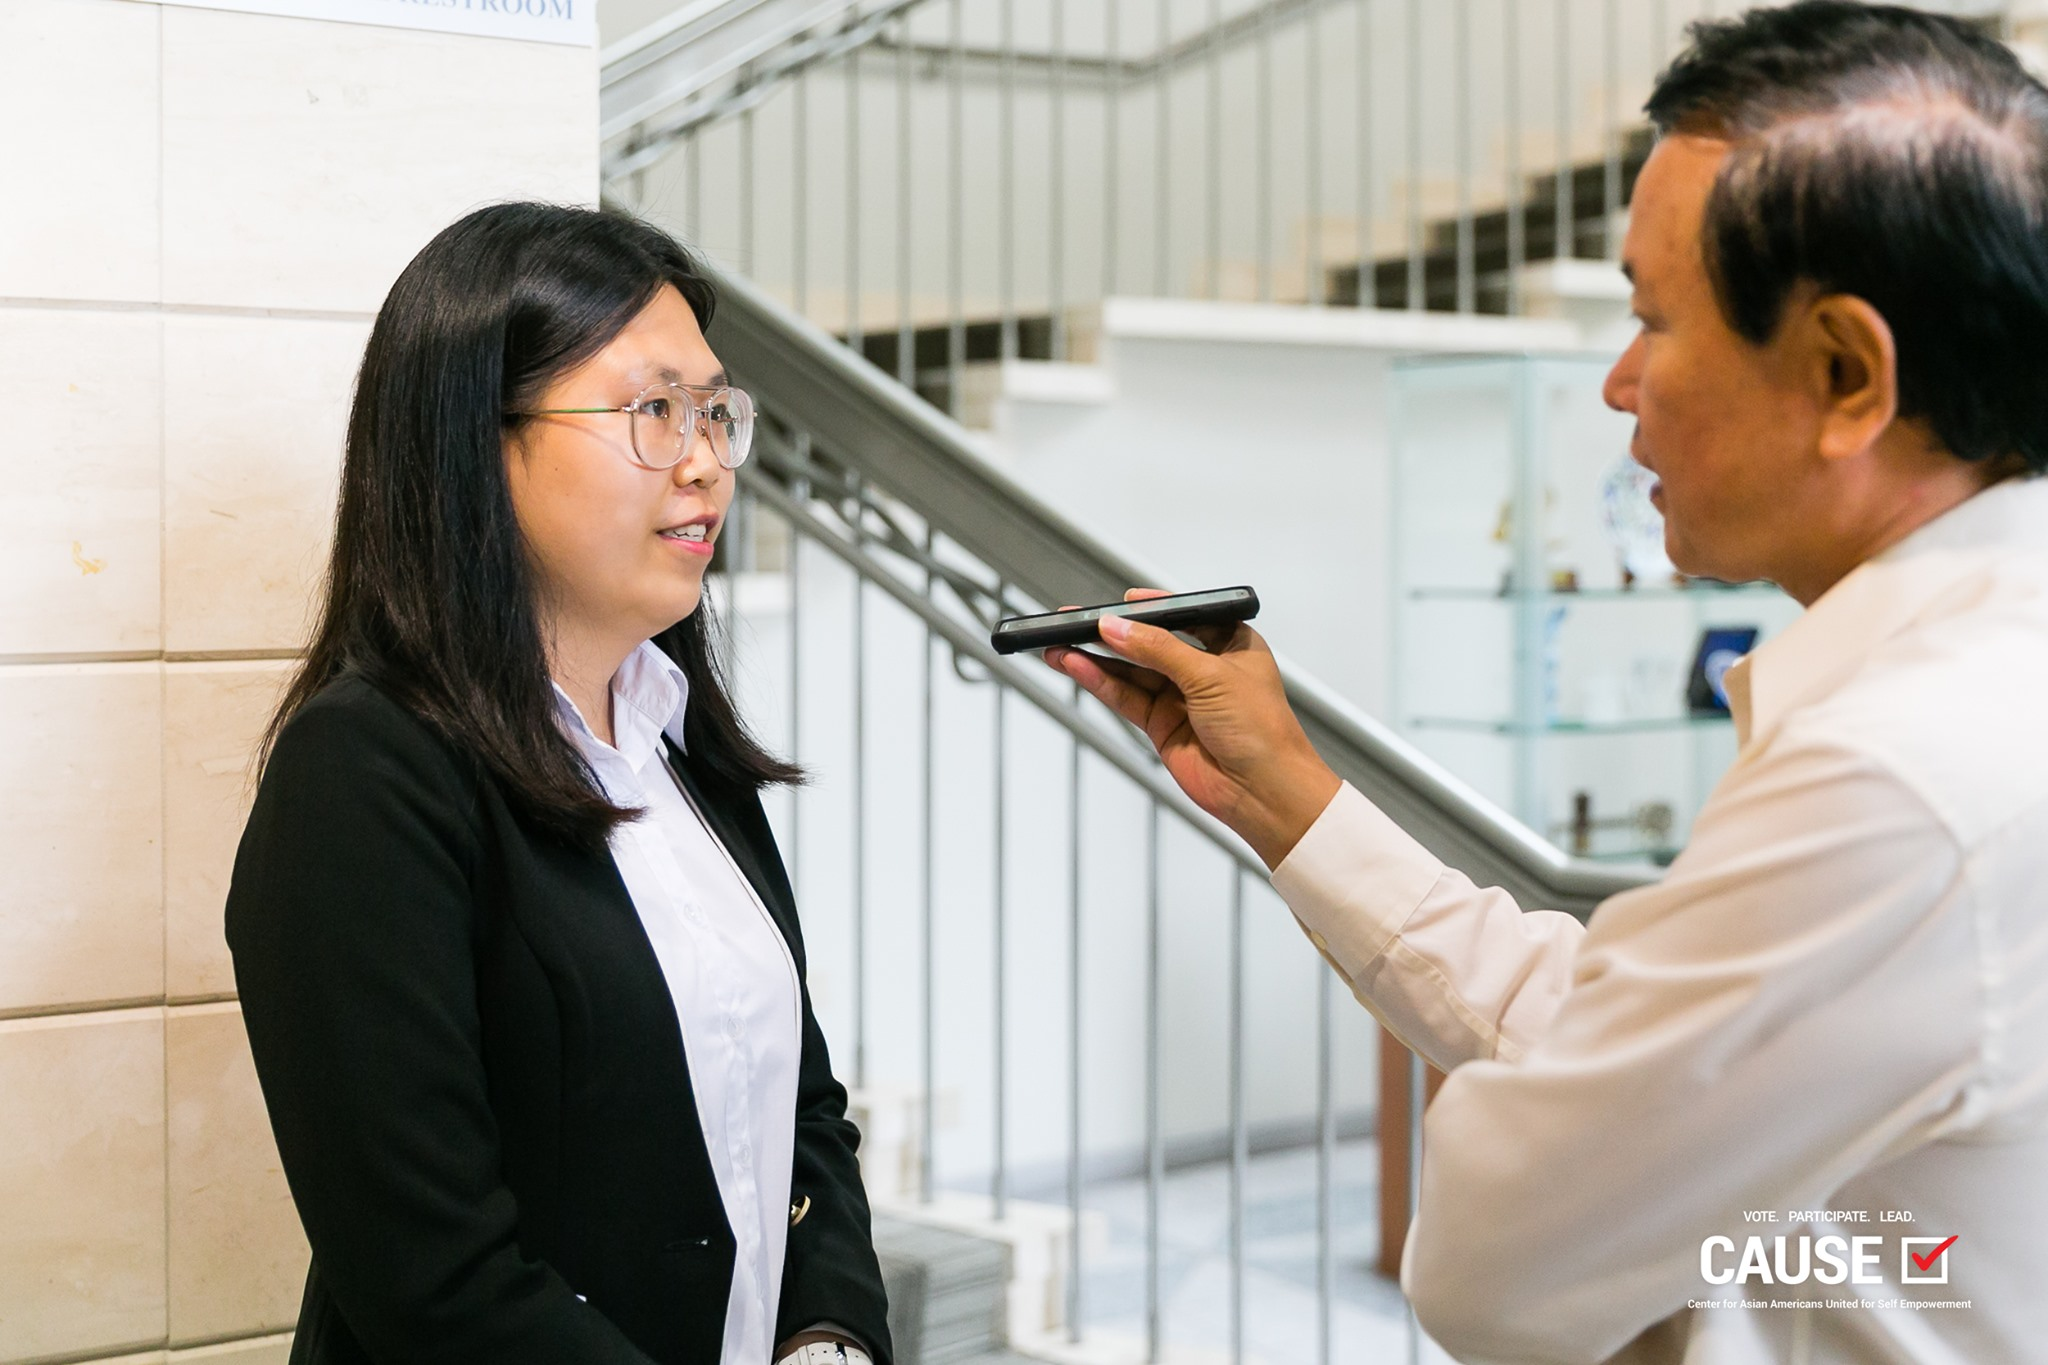 Yangqing Lei of the 2019 CAUSE Leadership Academy being interviewed